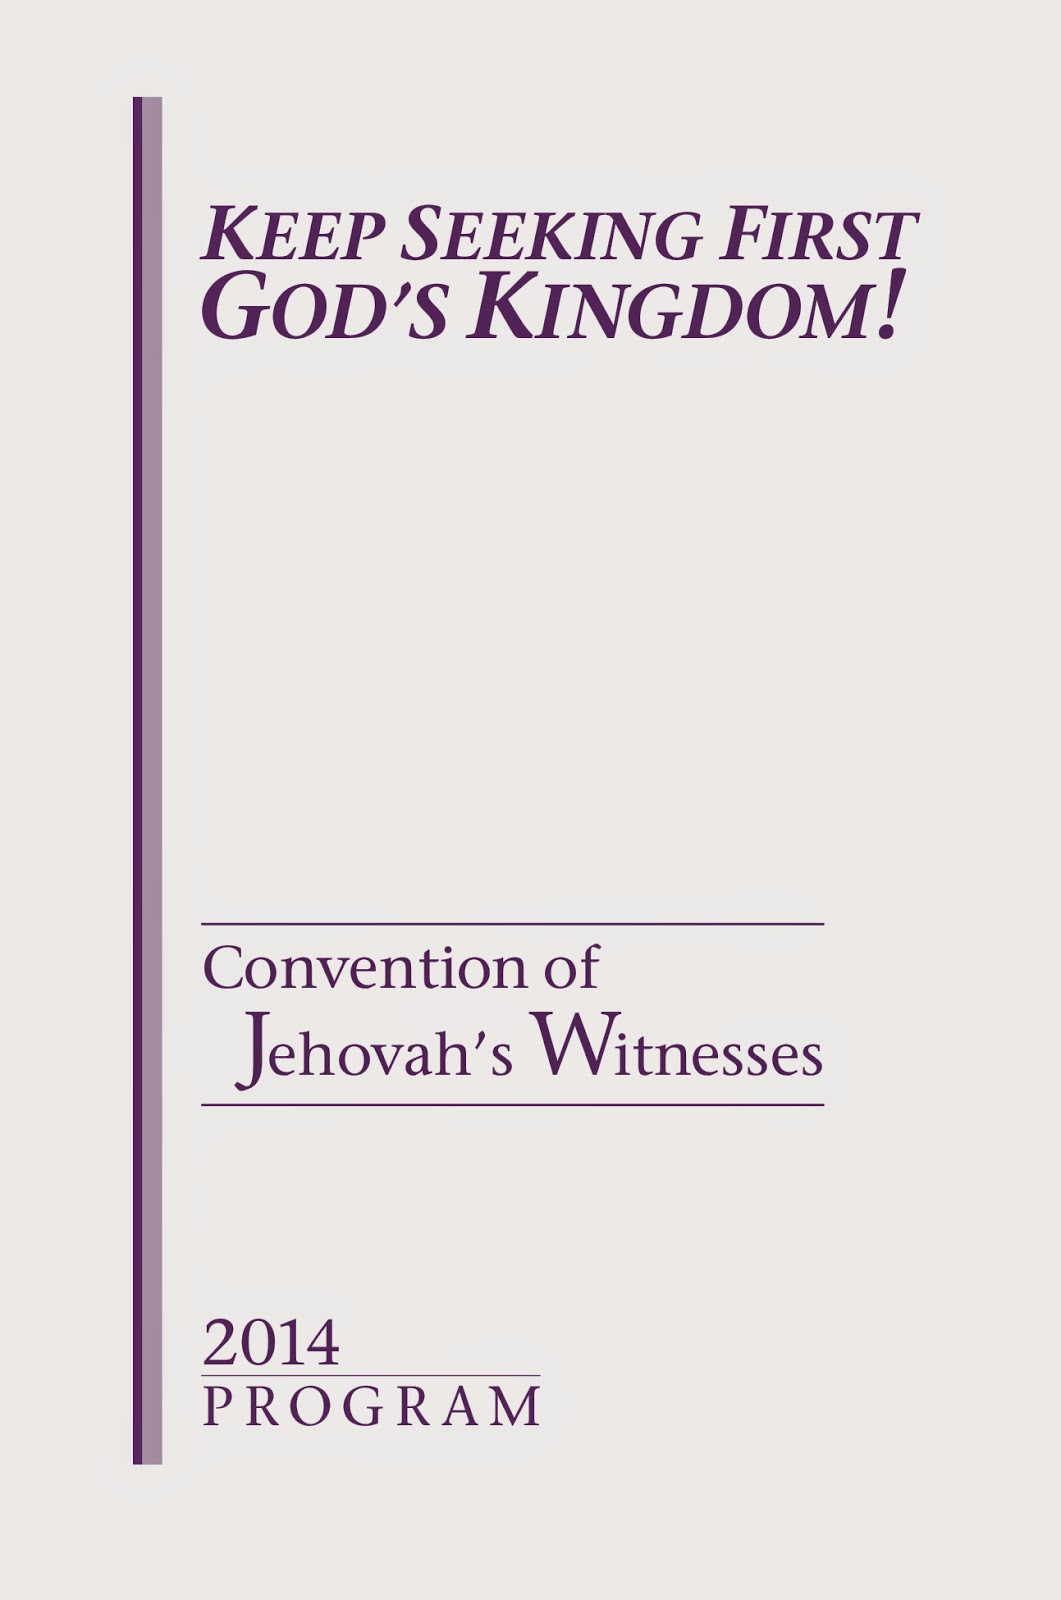 "First God's Kingdom!"" Convention of Jehovah's Witnesses 2014 Program"